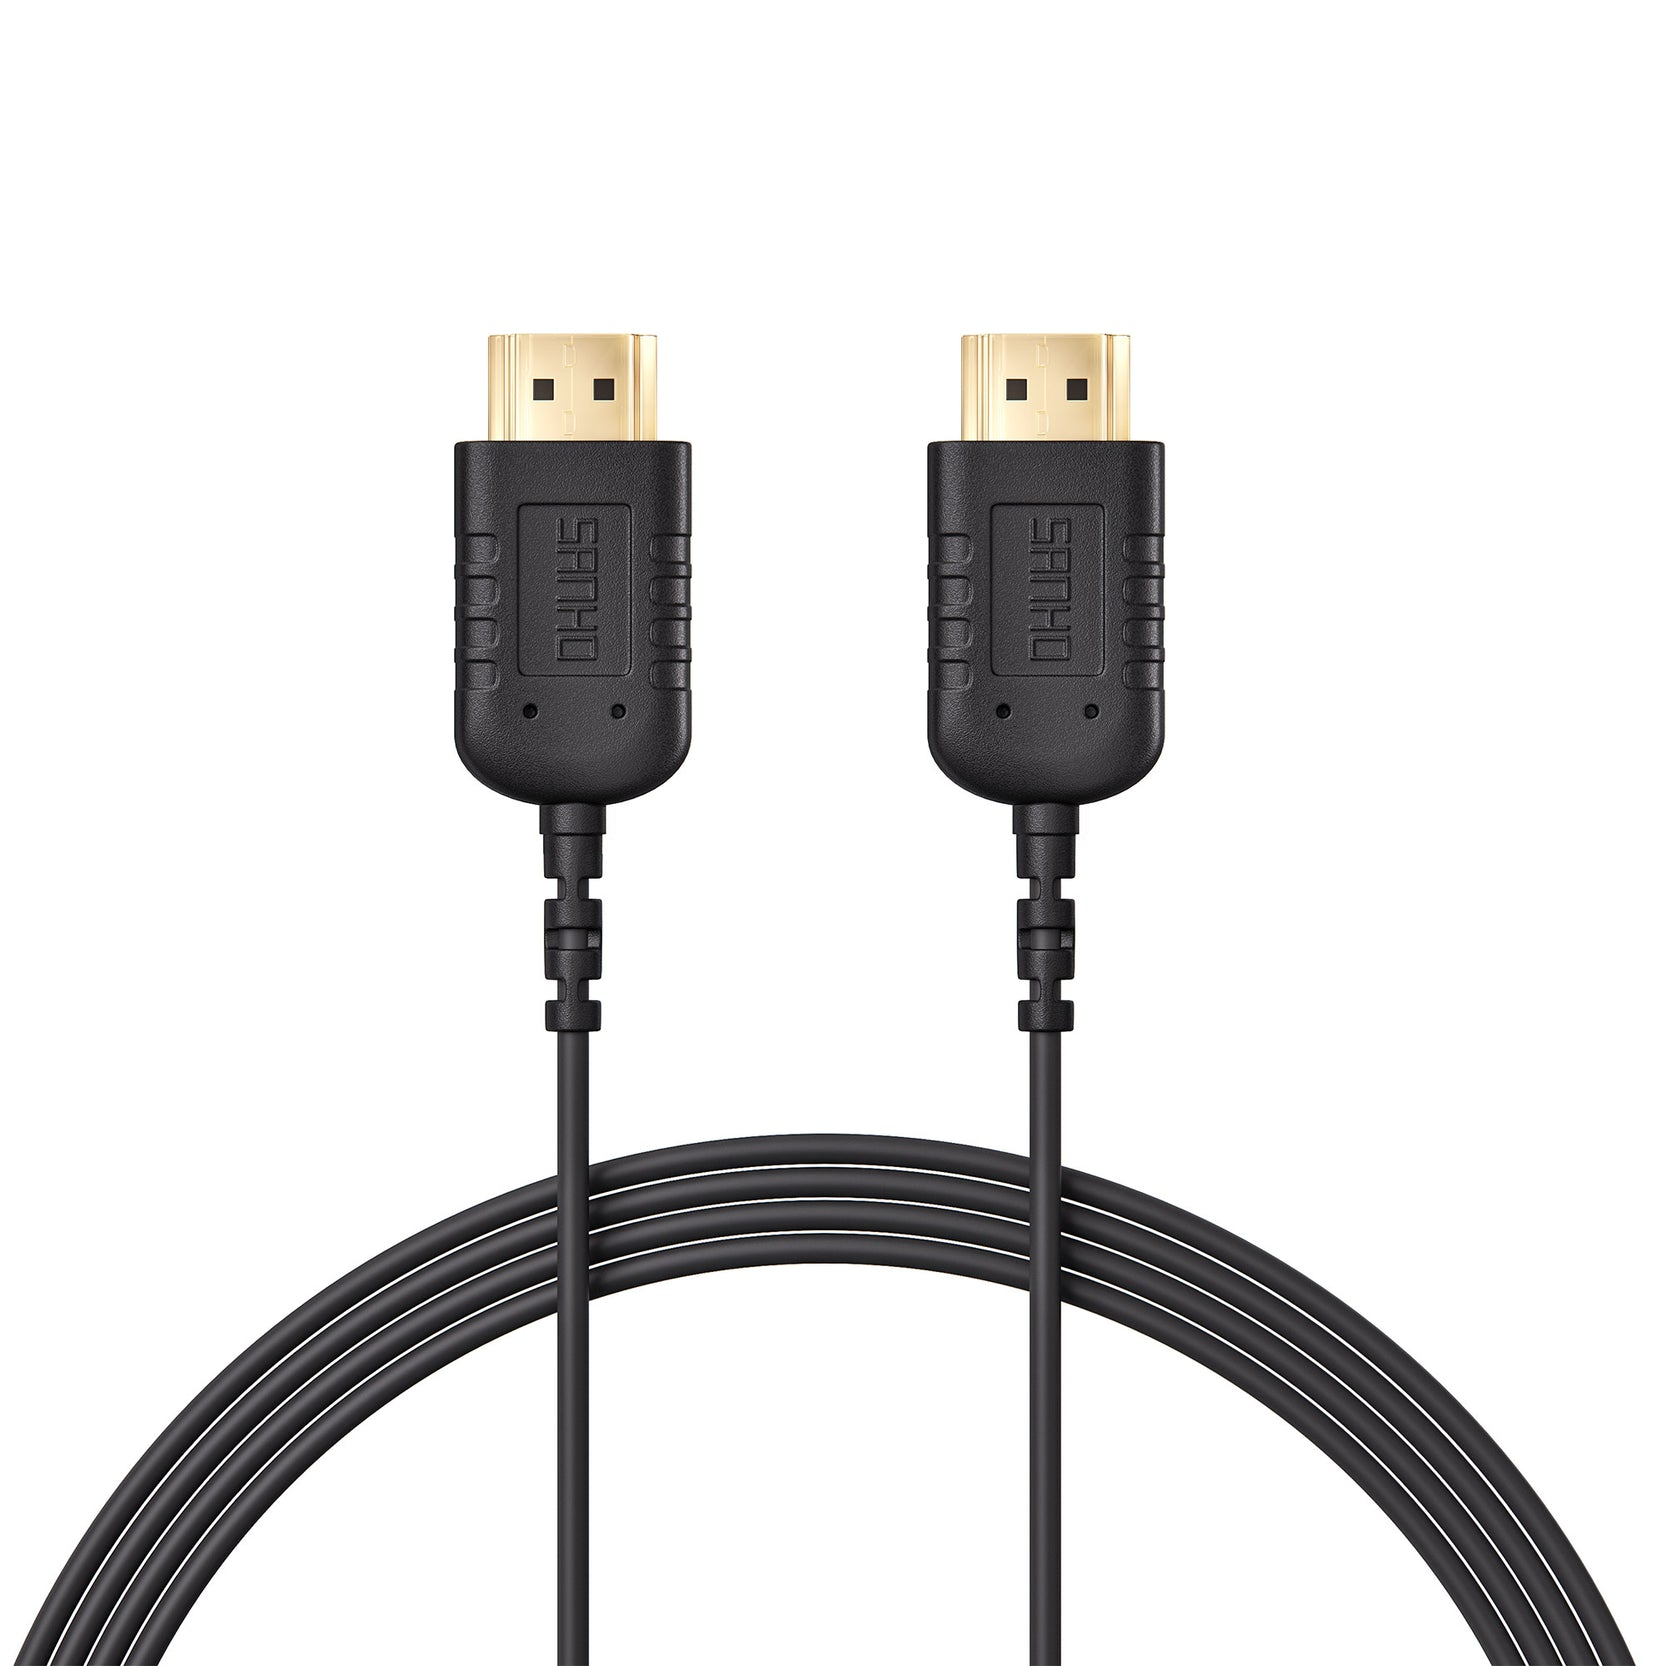 HyperThin HDMI to HDMI (0.8m) — World's thinnest & most flexible 4K HDMI cable.